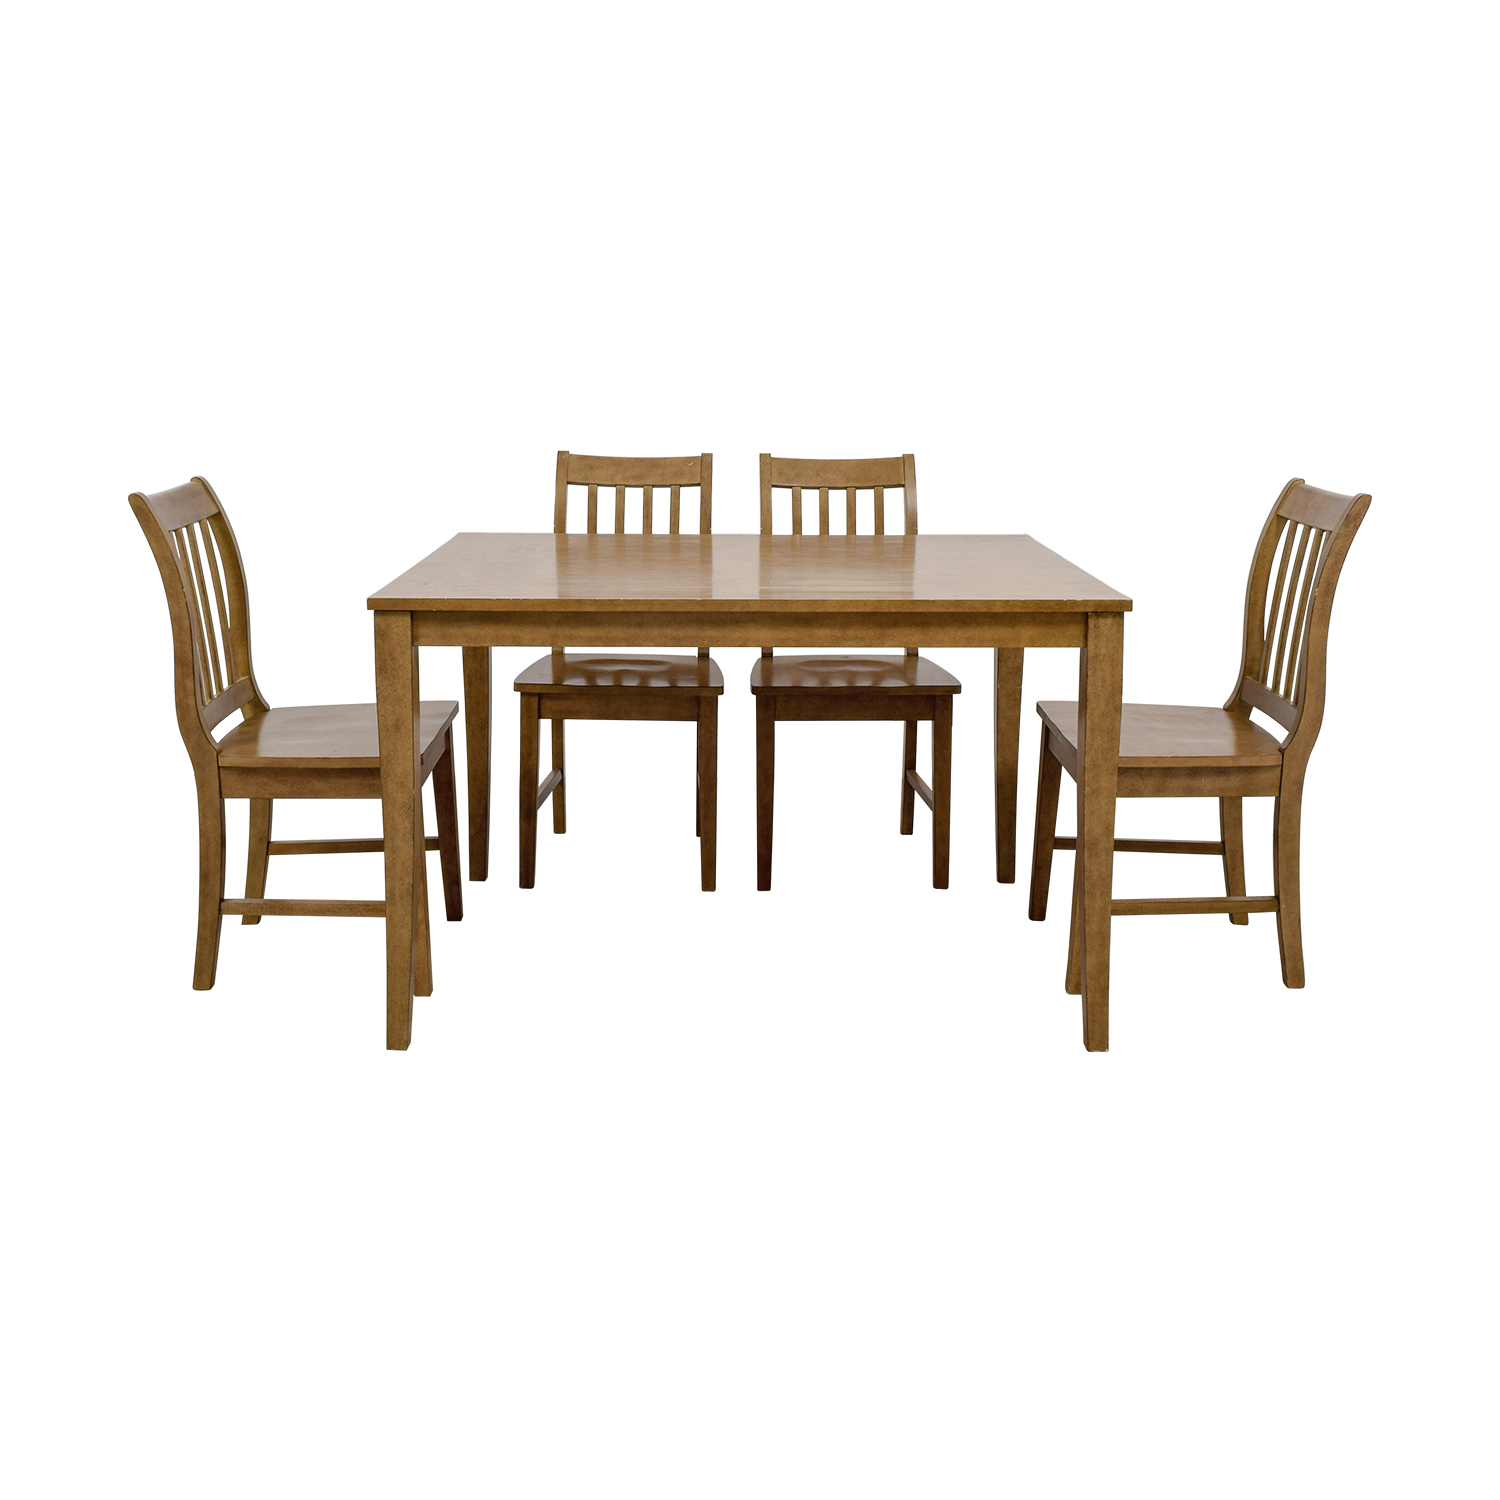 56% OFF - Target Target Brown Kitchen Table Set / Tables